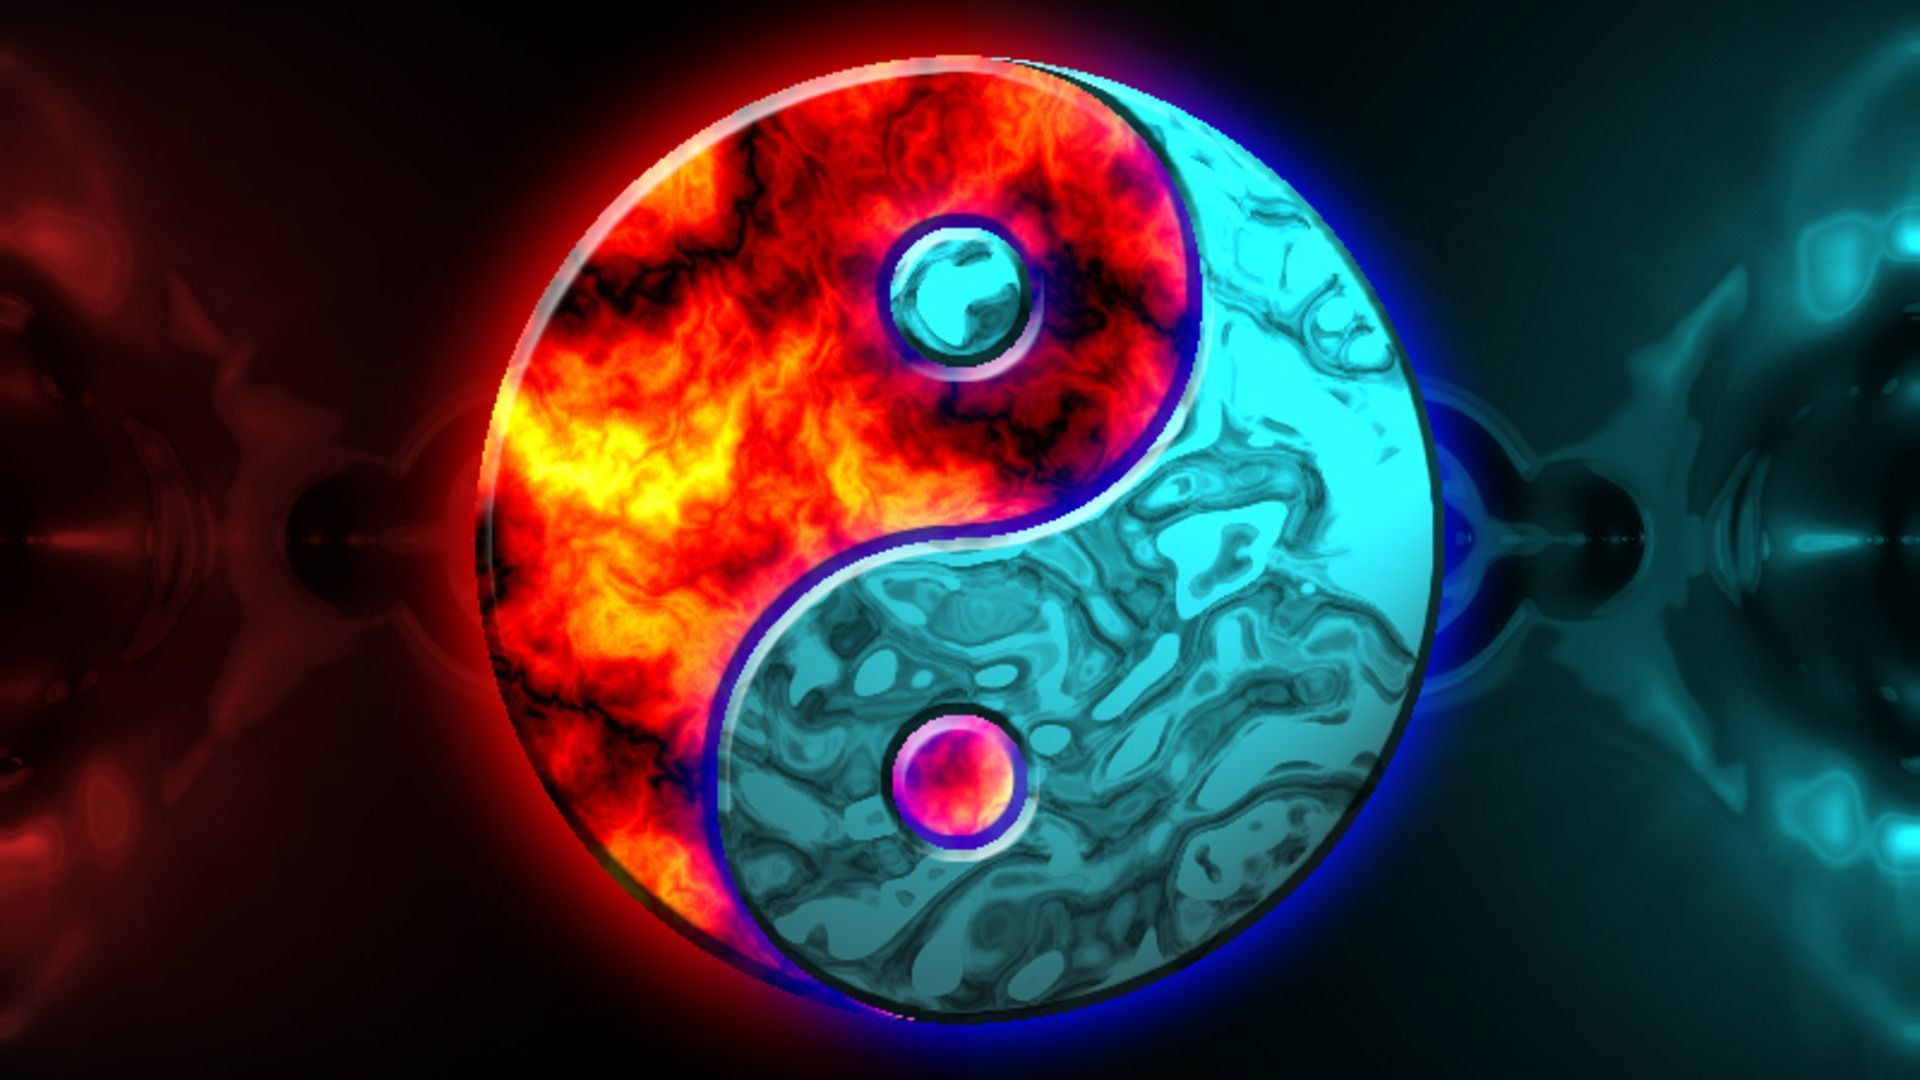 cool yin yang wallpaper